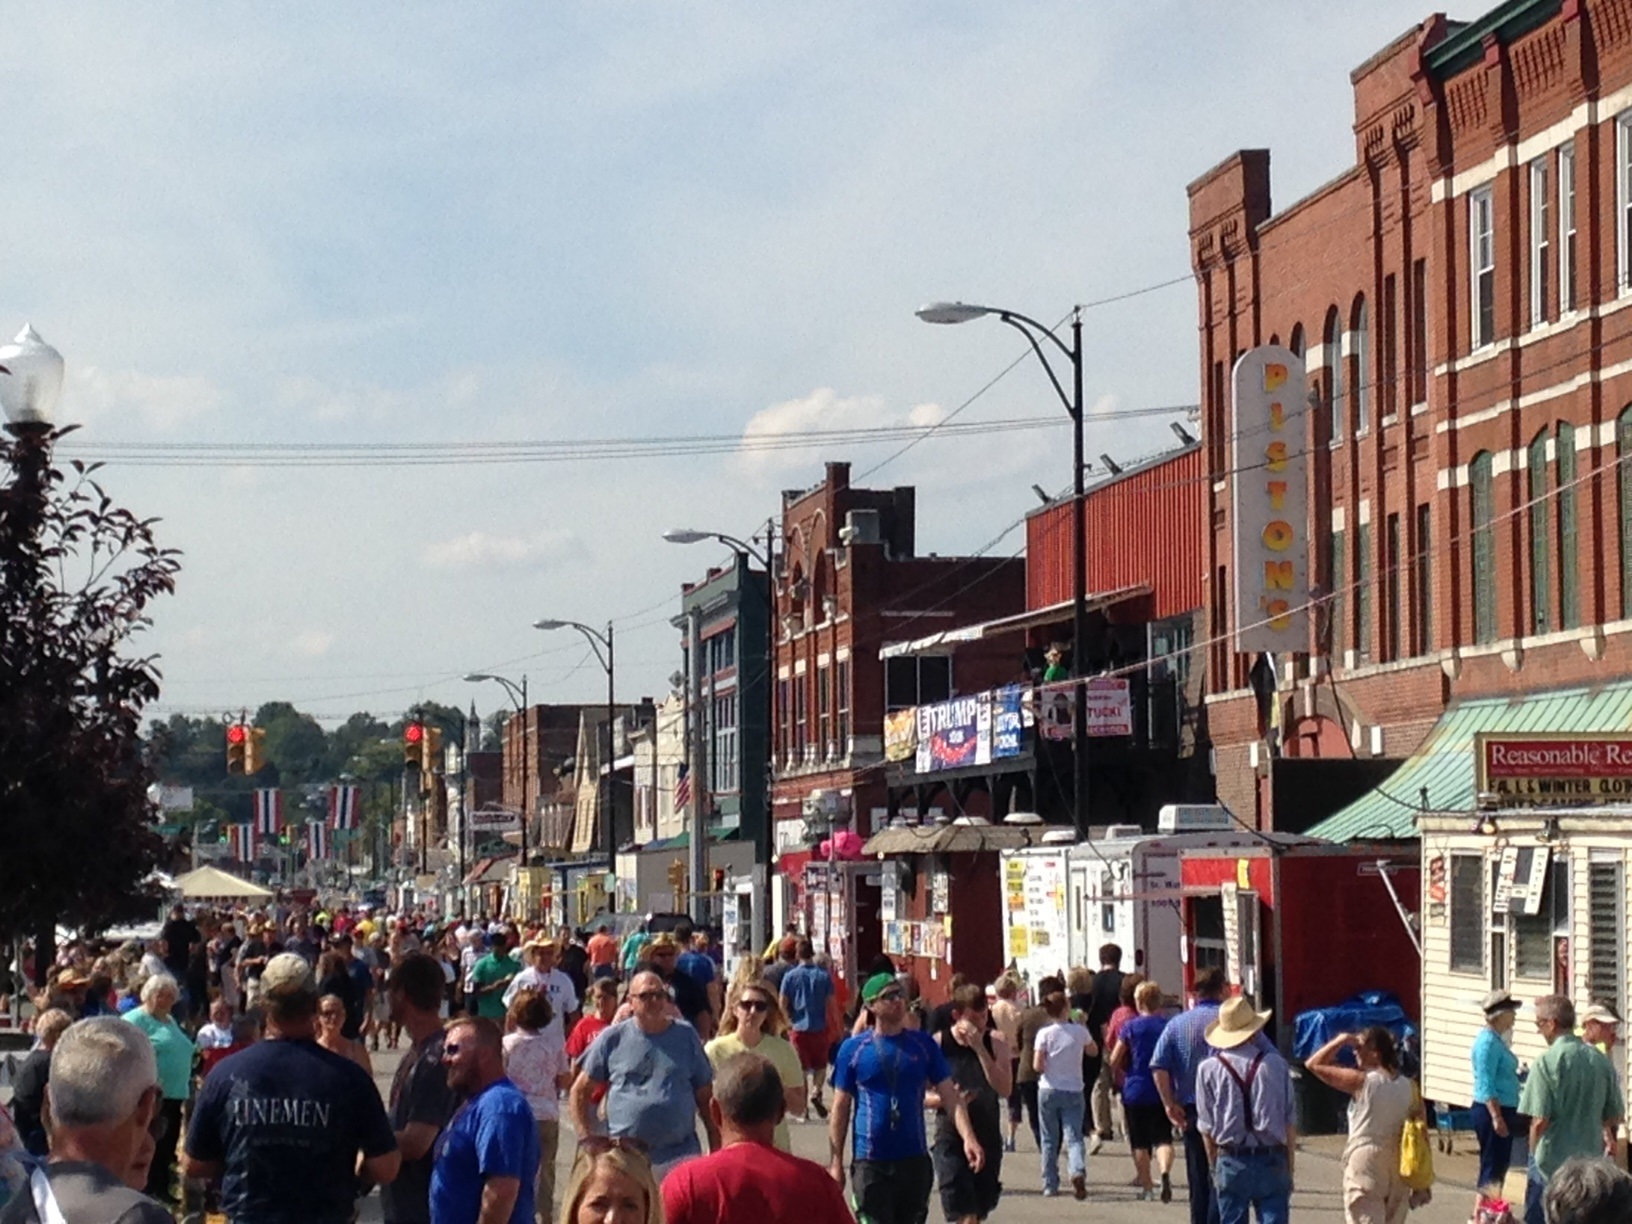 Munchie Map released for 97th Fall Festival | News | WABX 107.5